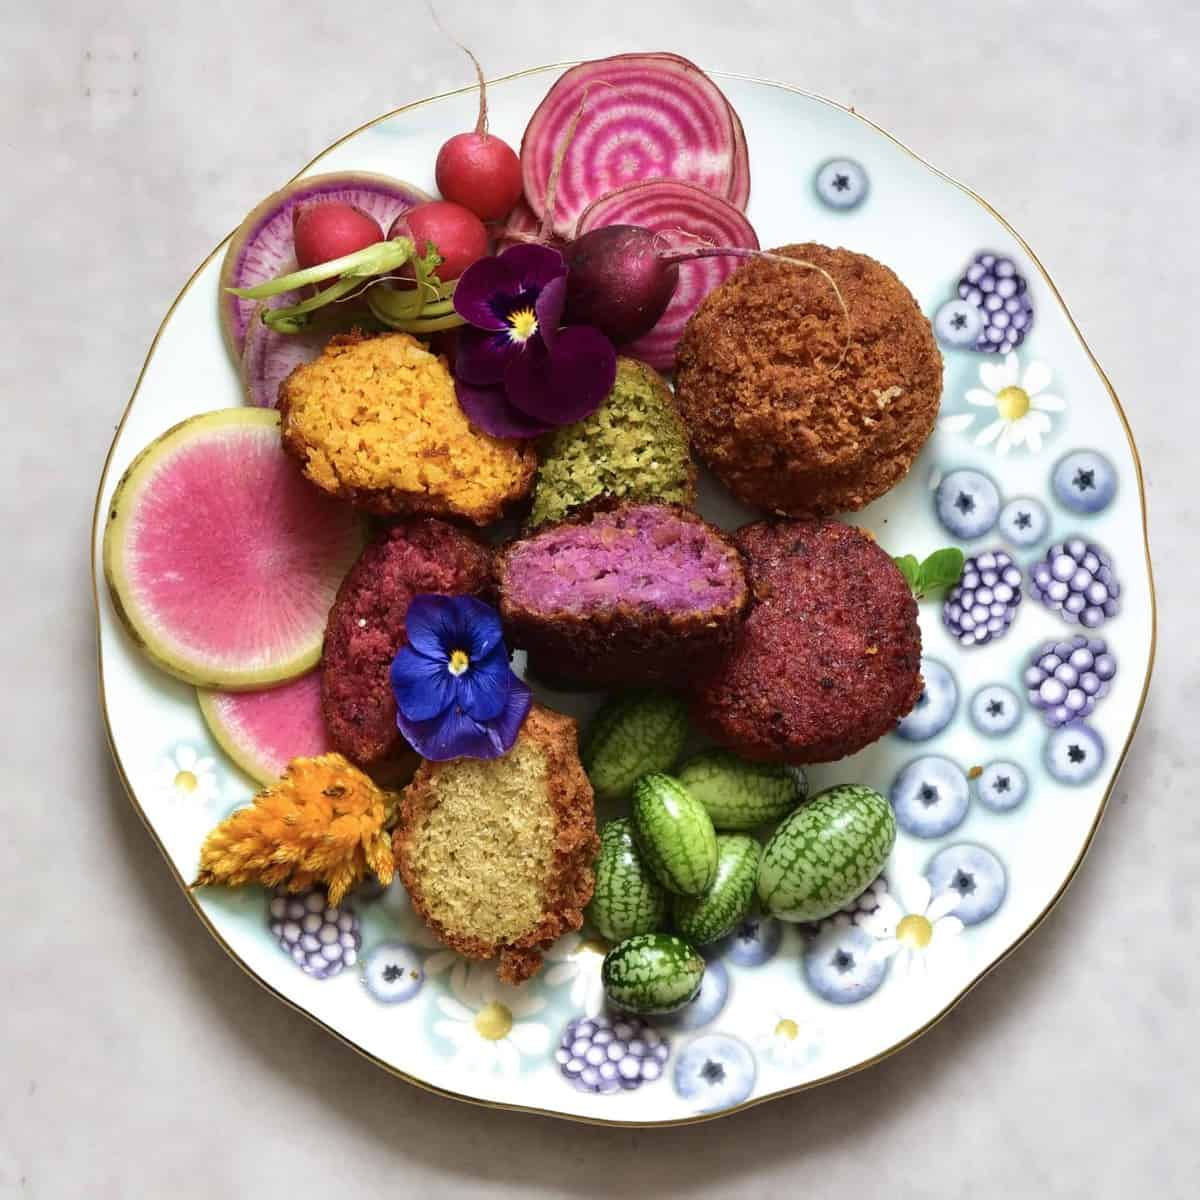 Rainbow falafel with veggies and edible flowers